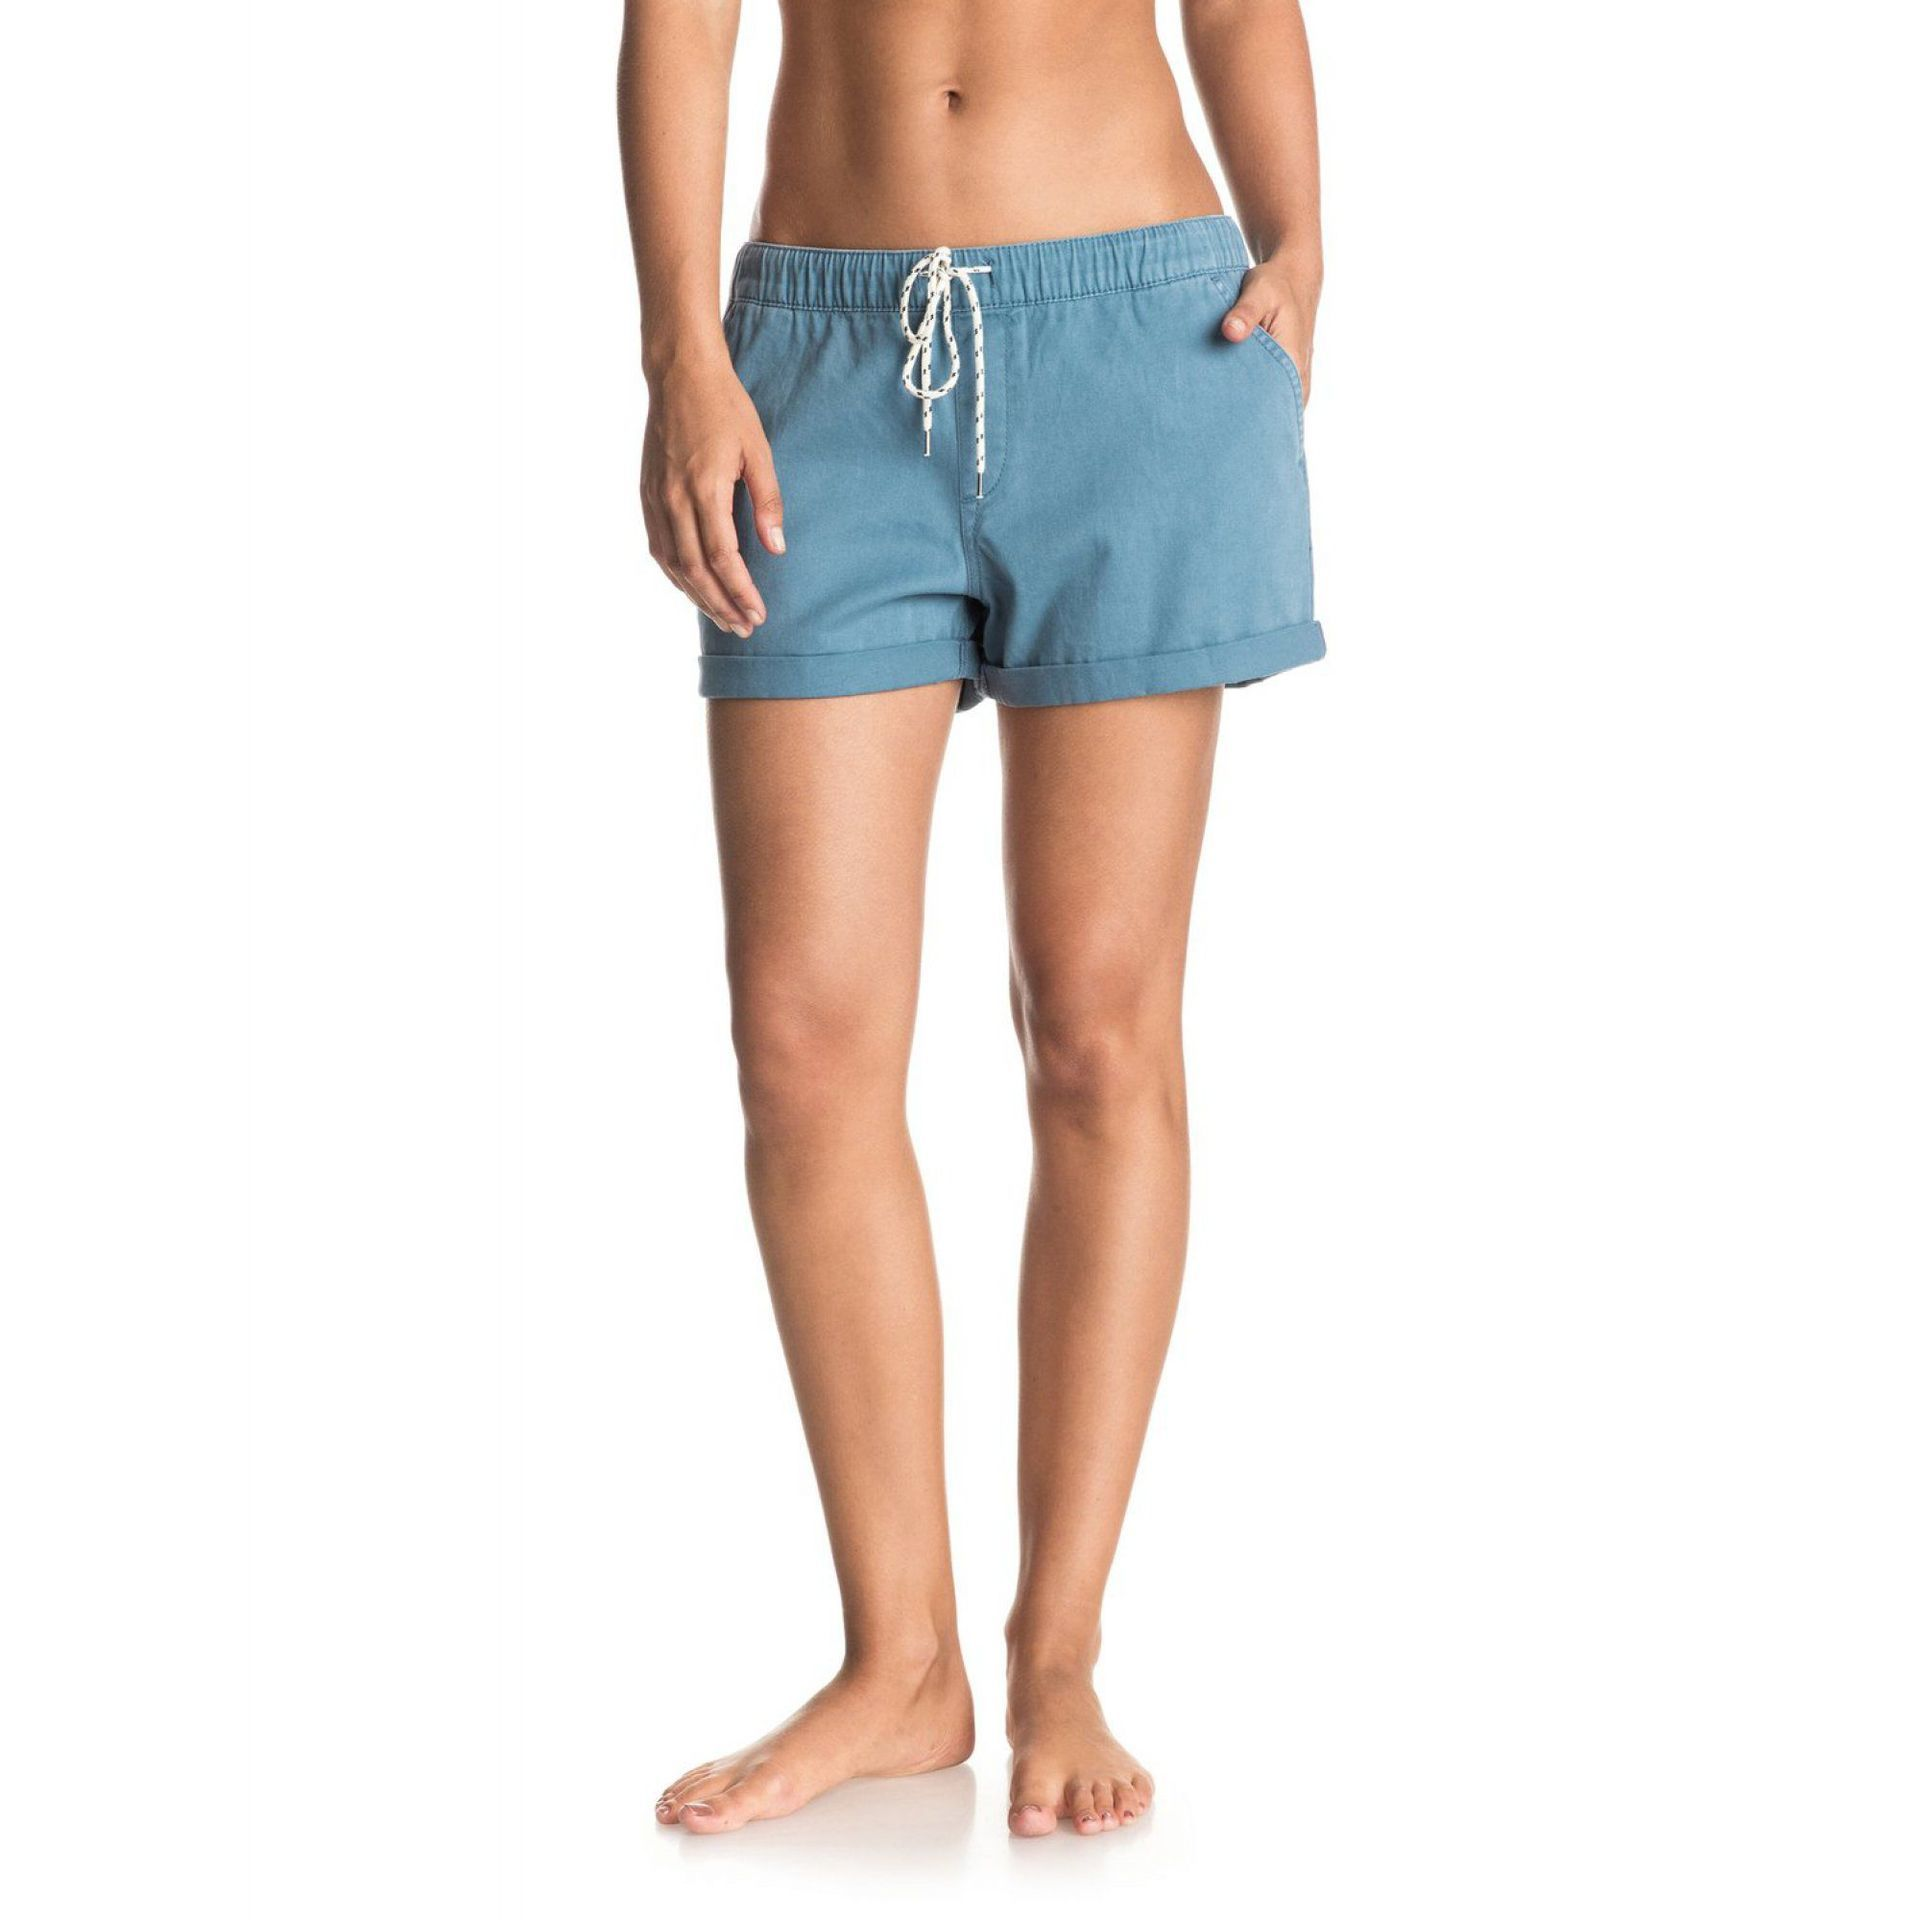 SPODENKI ROXY EASY BEACHY SHORT BME0